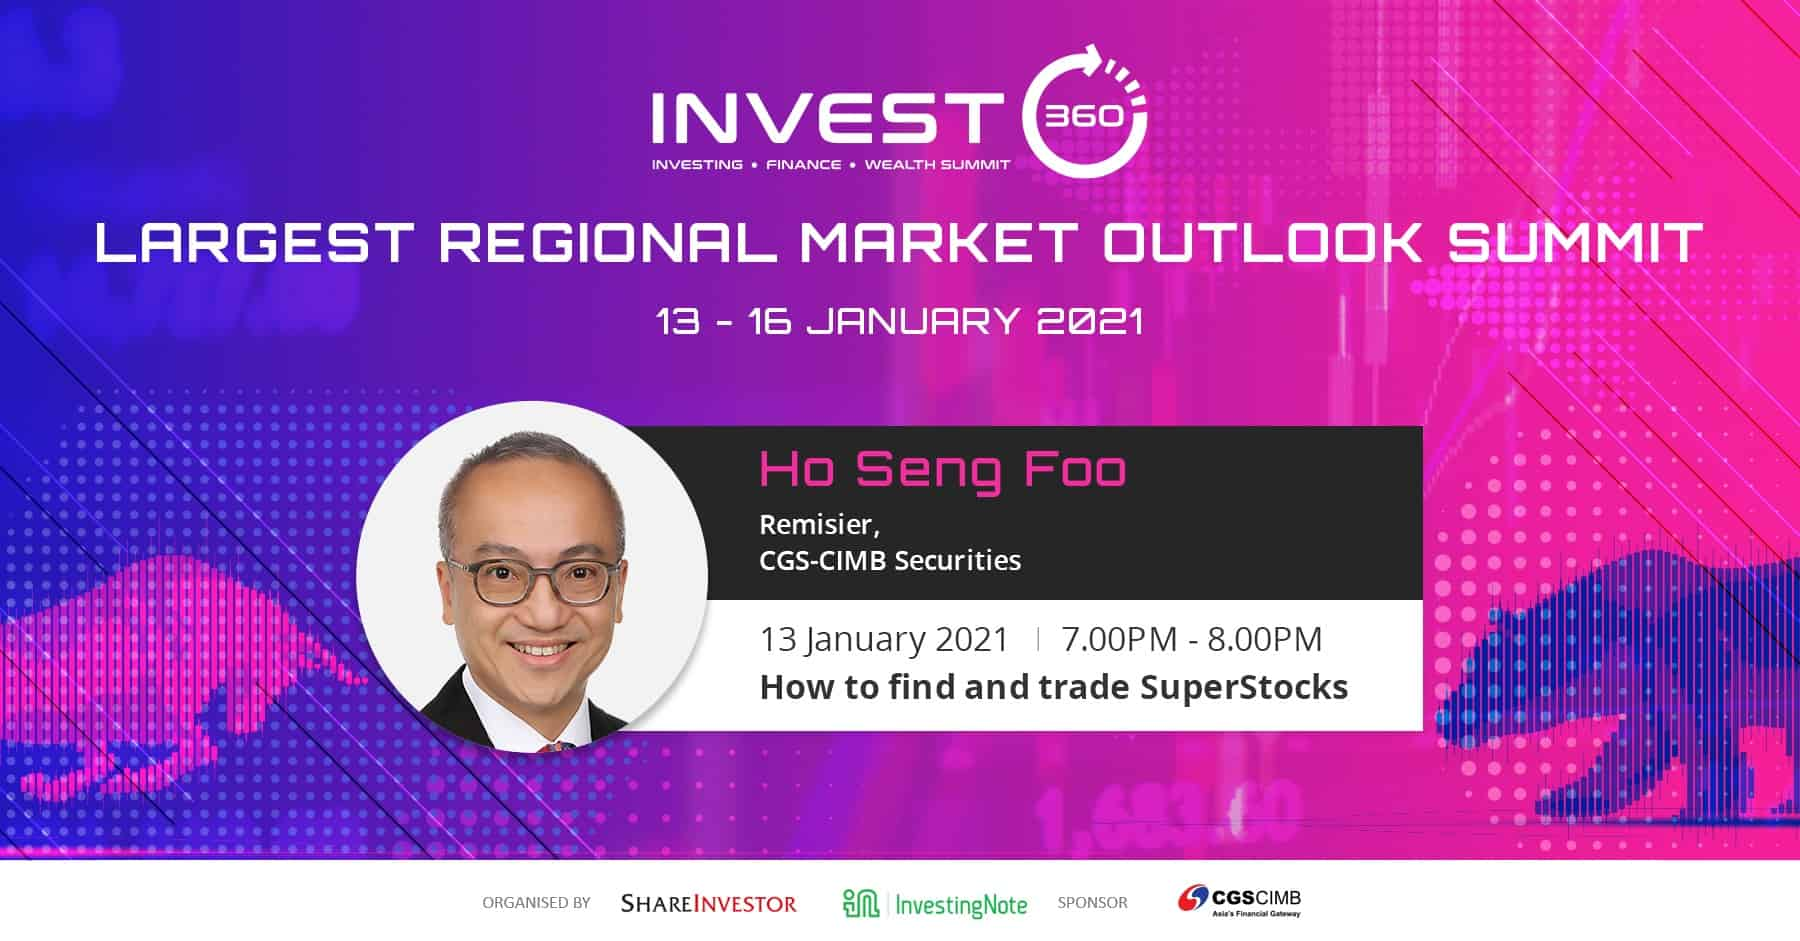 Invest360 starts today! The Biggest Market Outlook Event for 2021